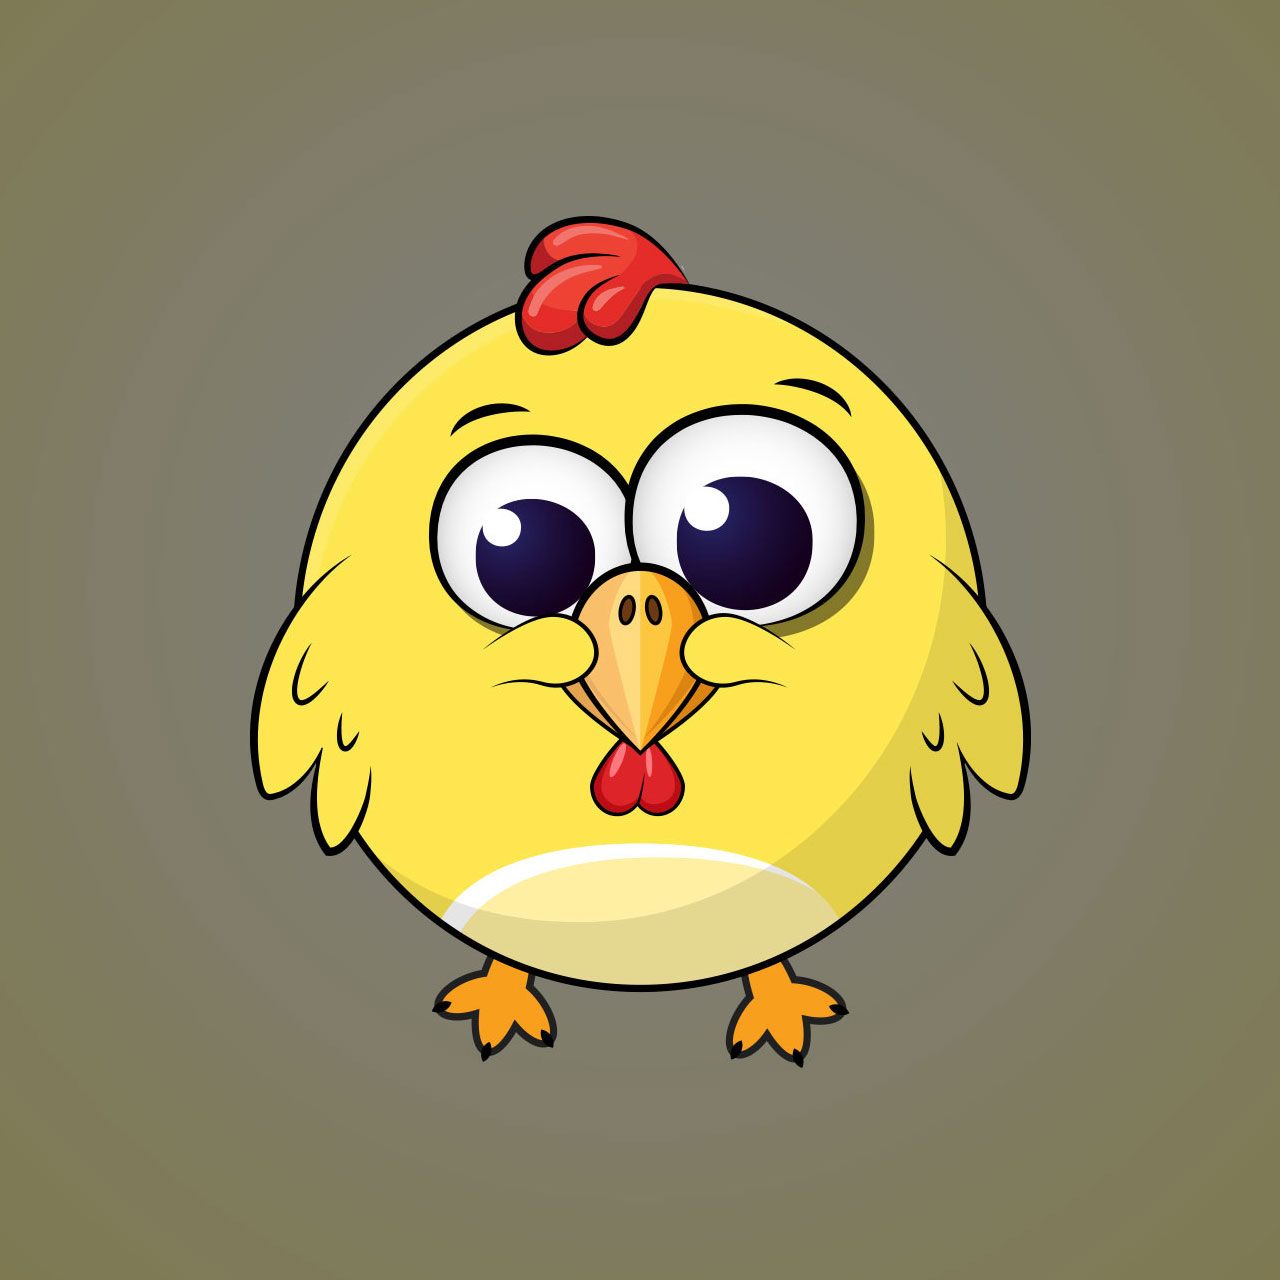 Chicken Minimal Vector Character Design For A Casual Mobile Game